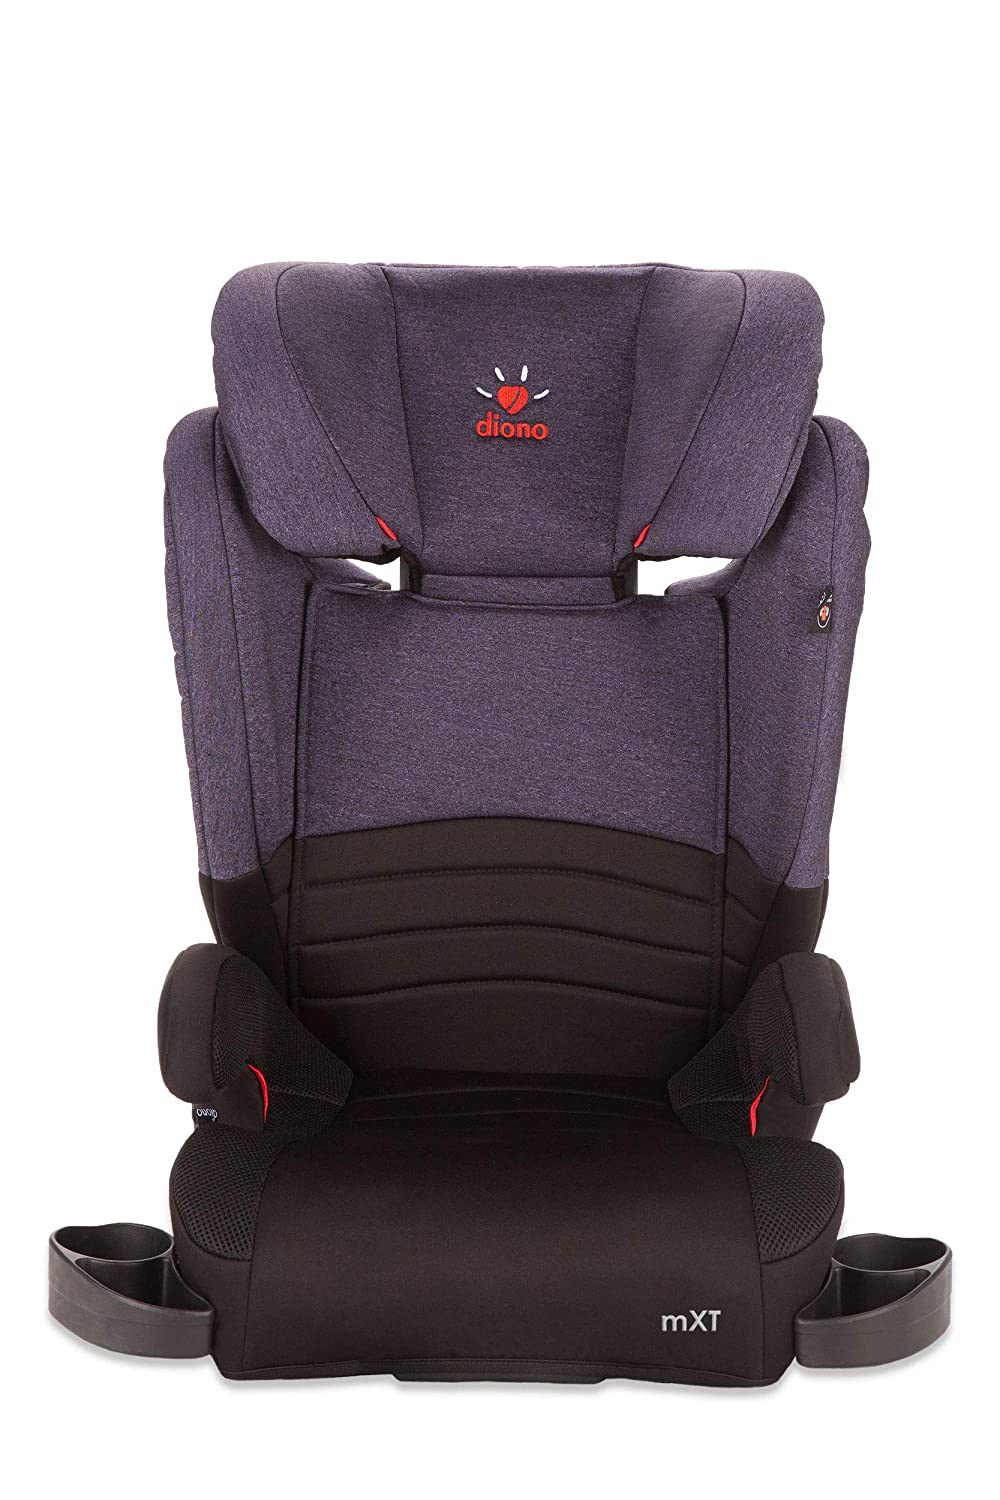 2-in-1 Expandable Booster Seat Purple Discontinued by Manufacture Diono Monterey XT LATCH